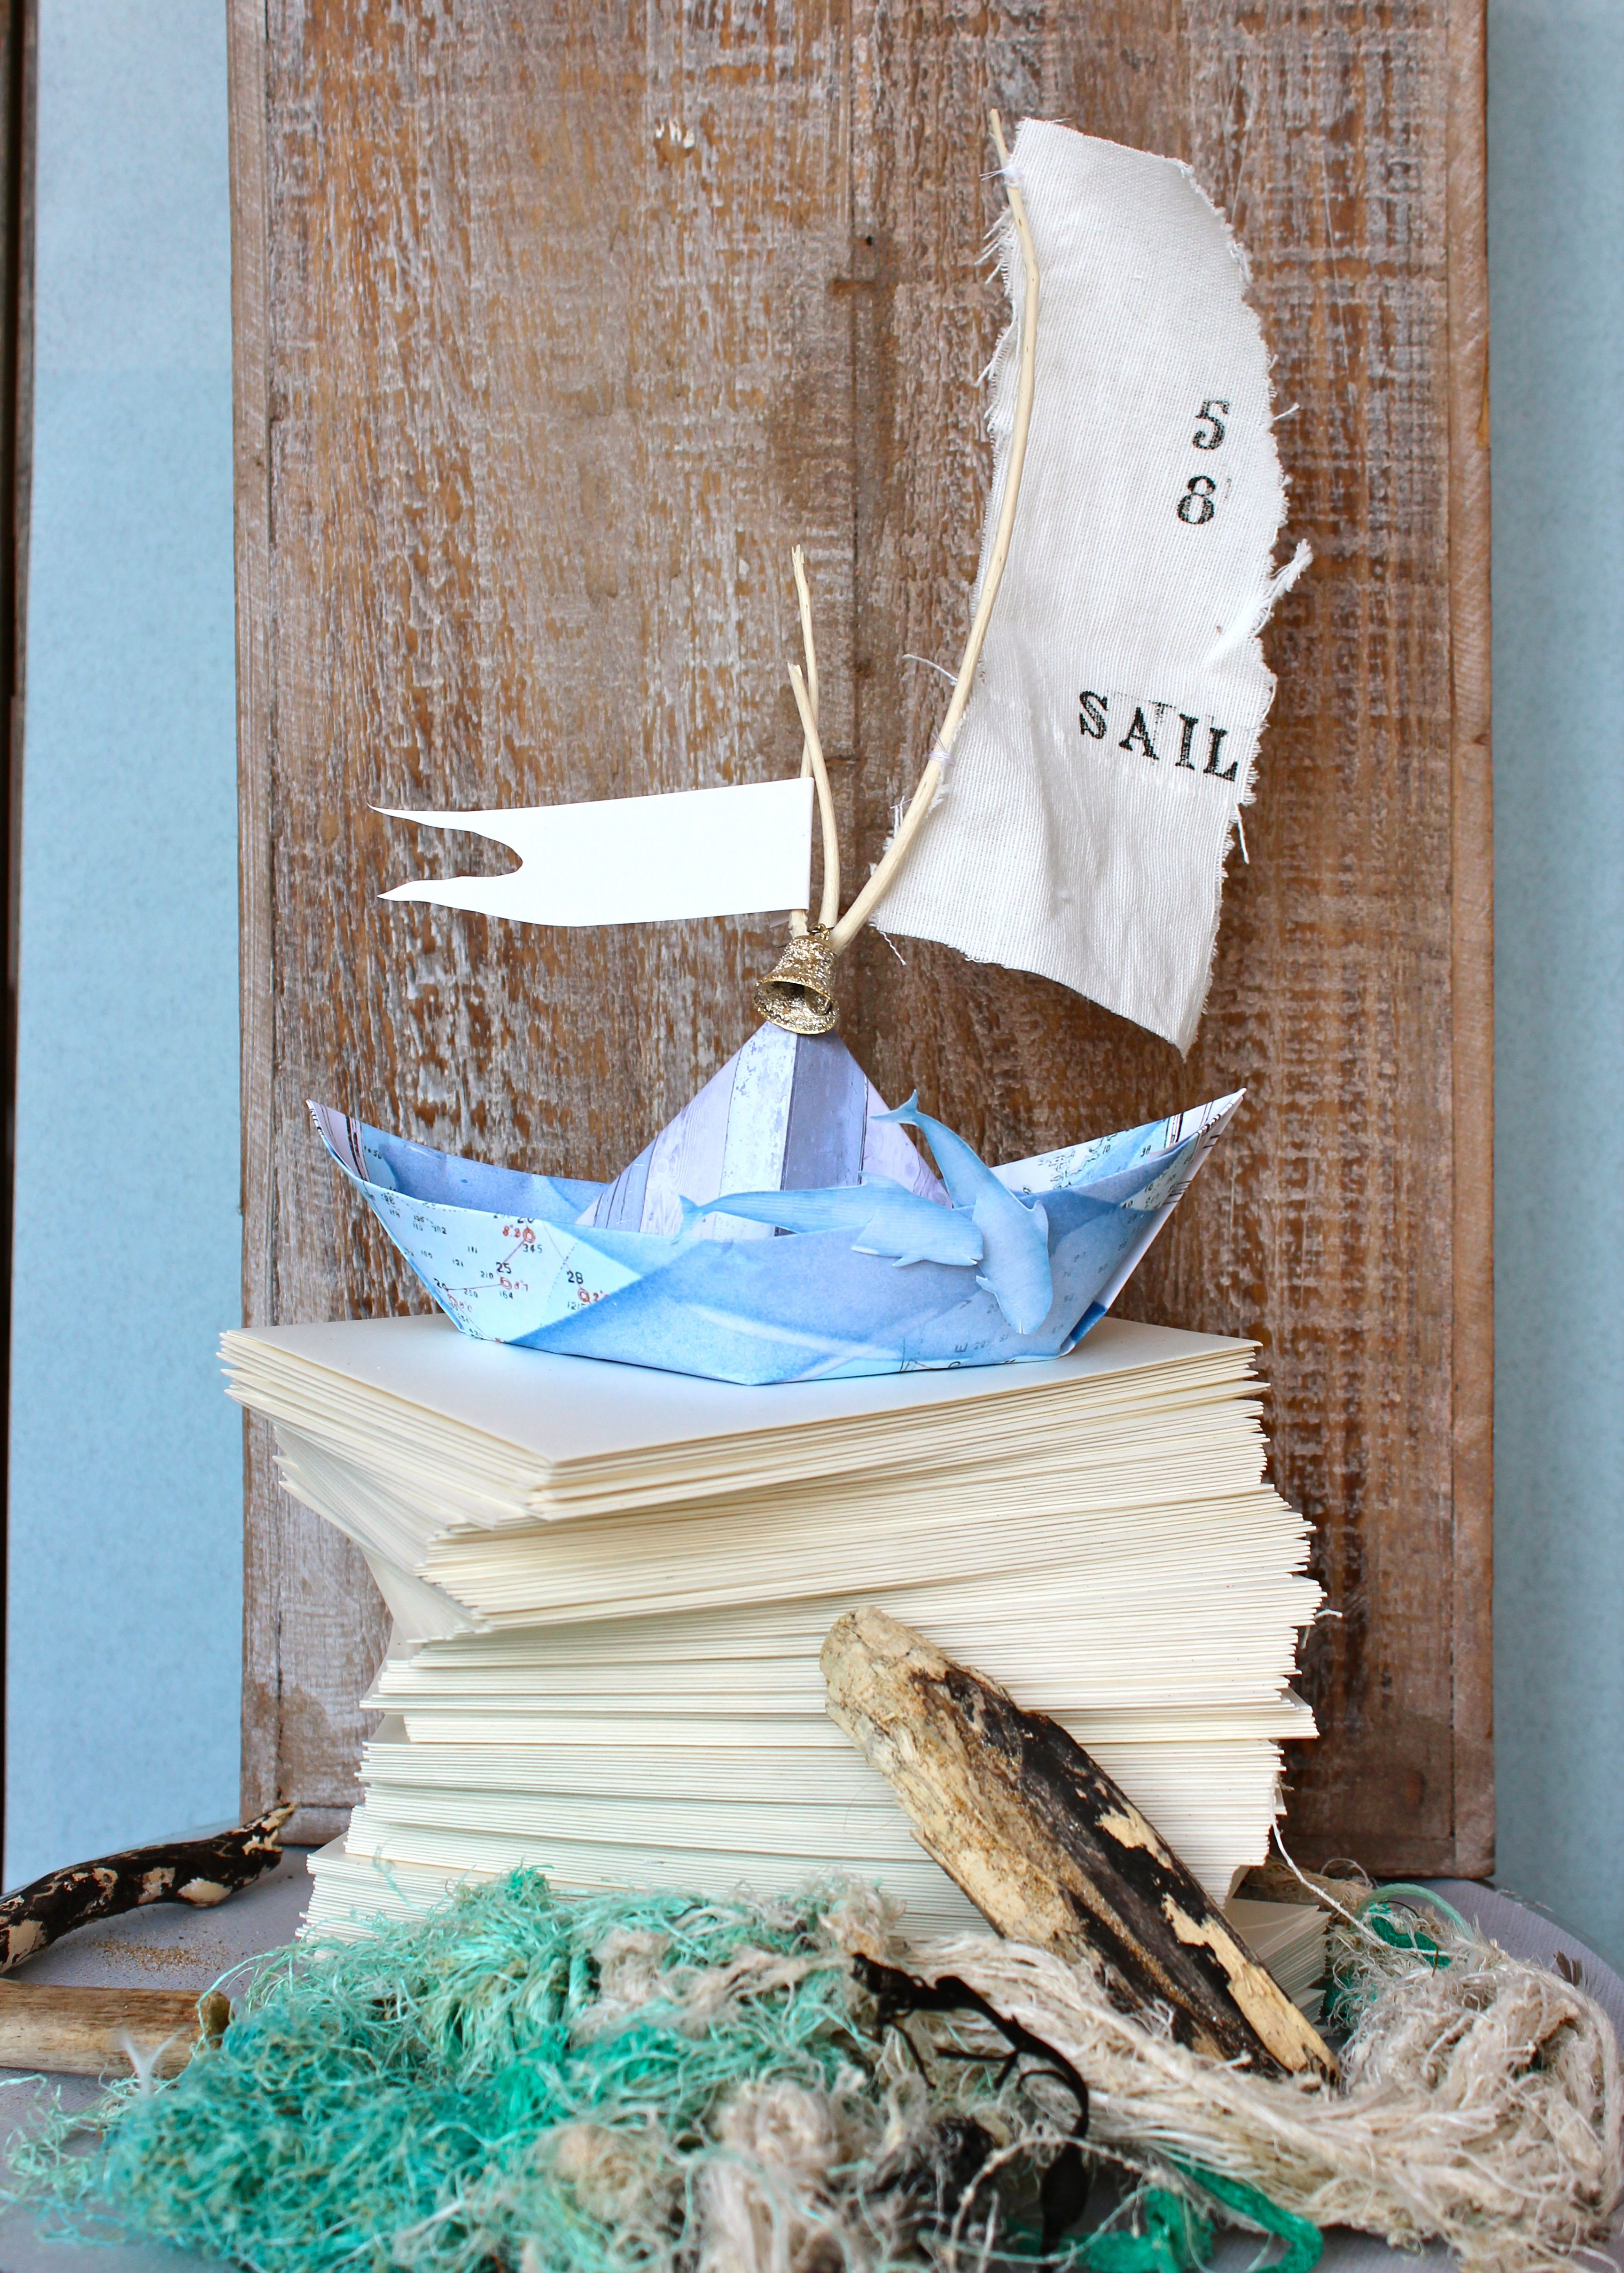 paper boat with sail